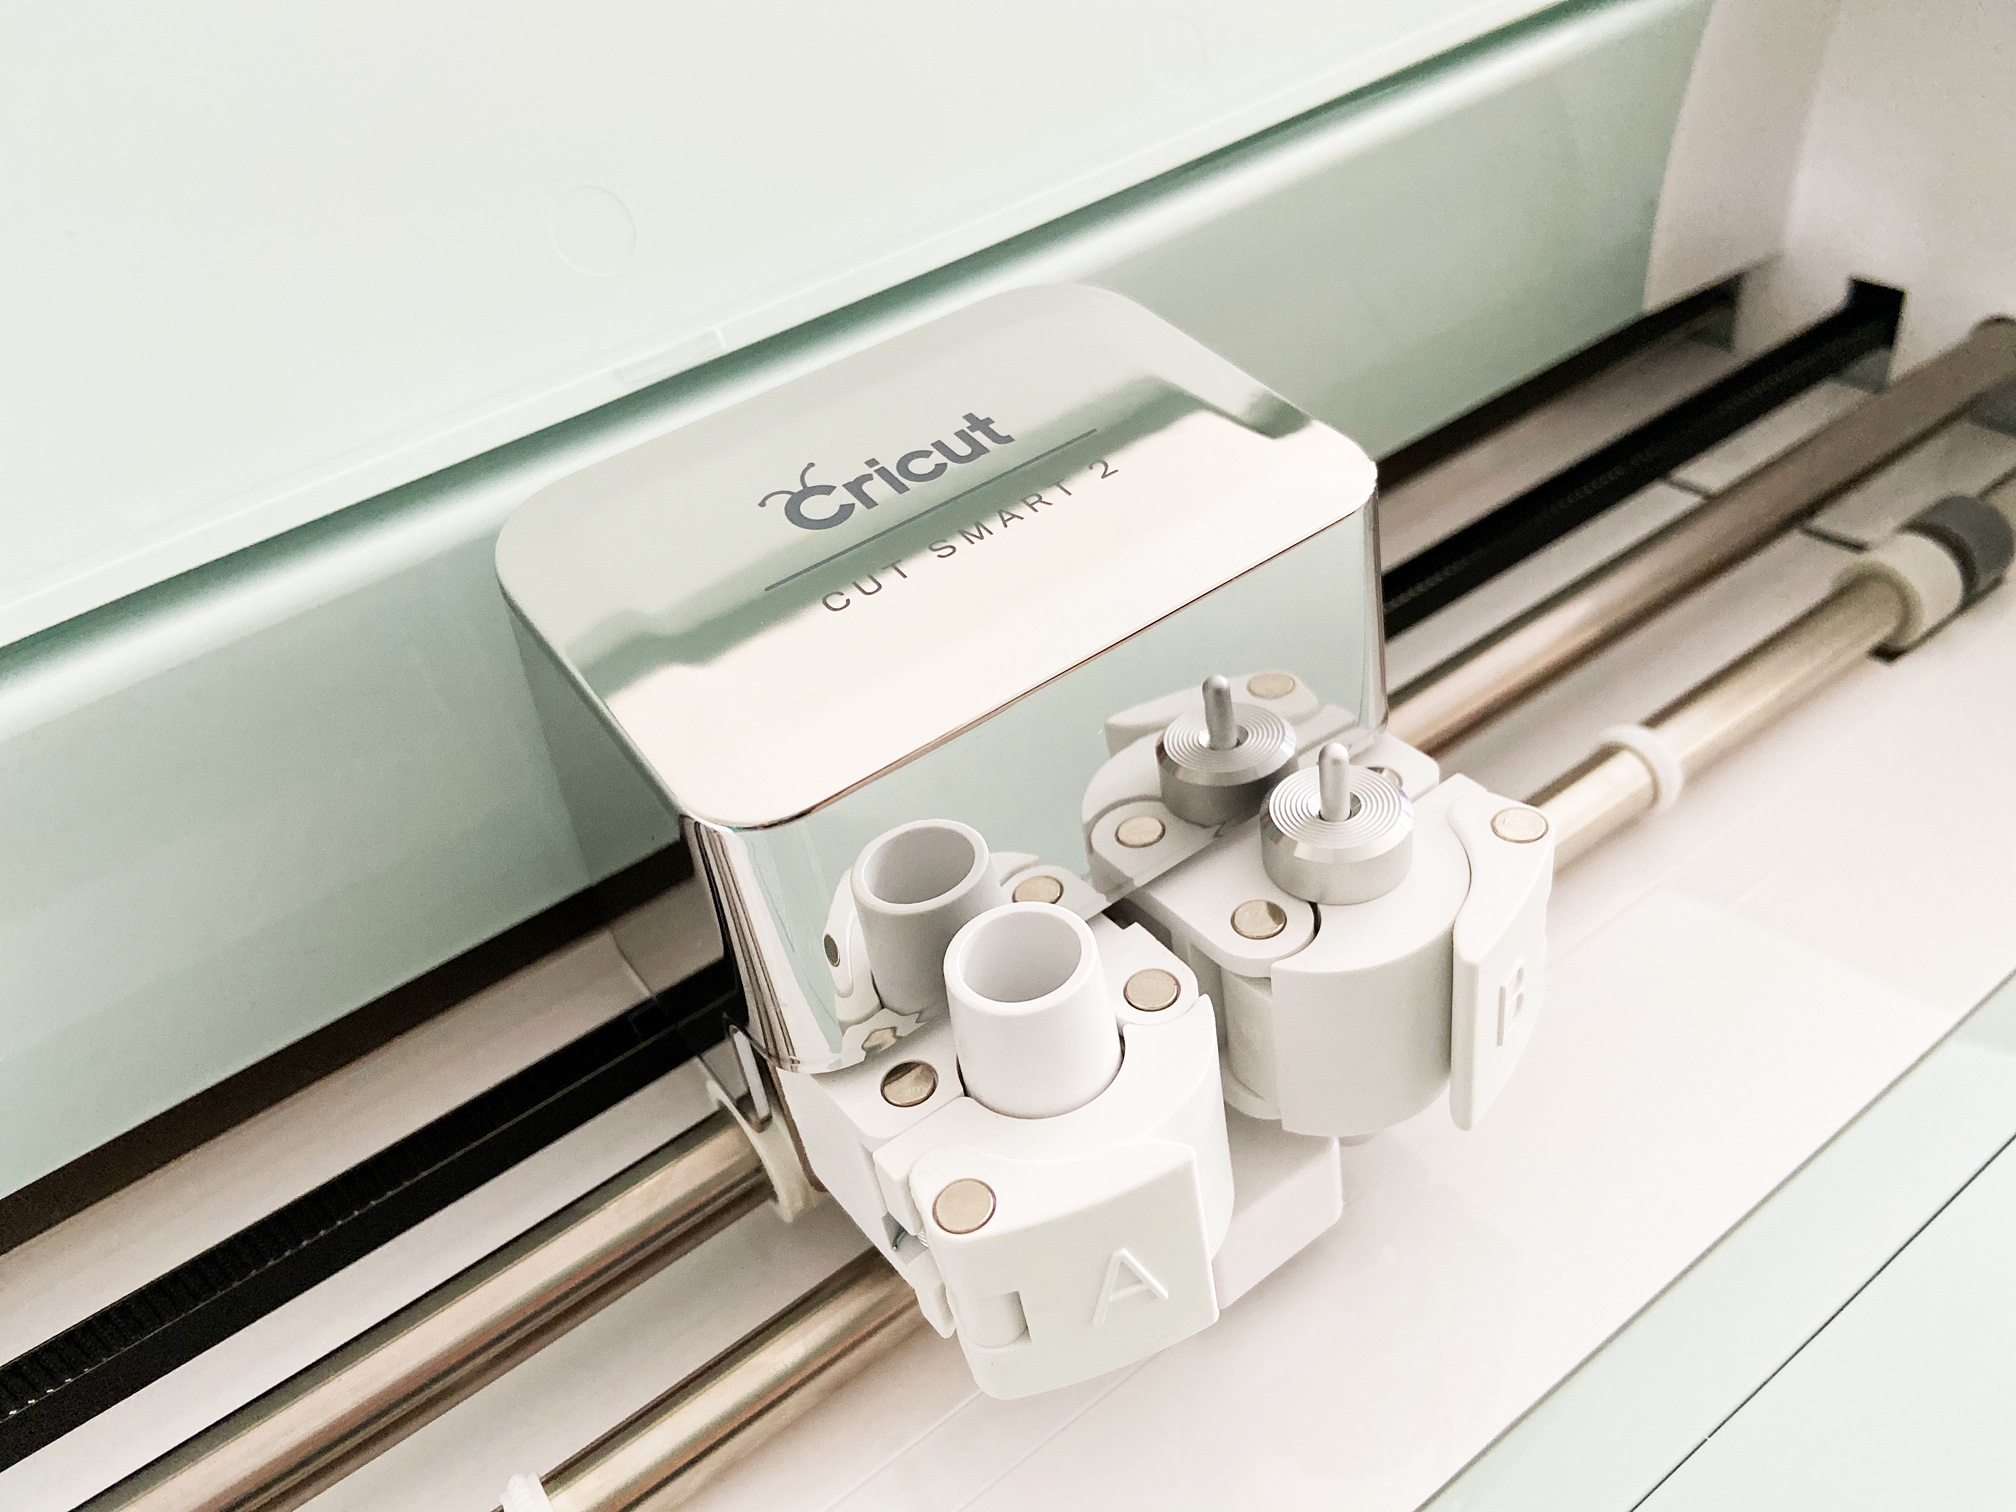 Cricut Cut Smart